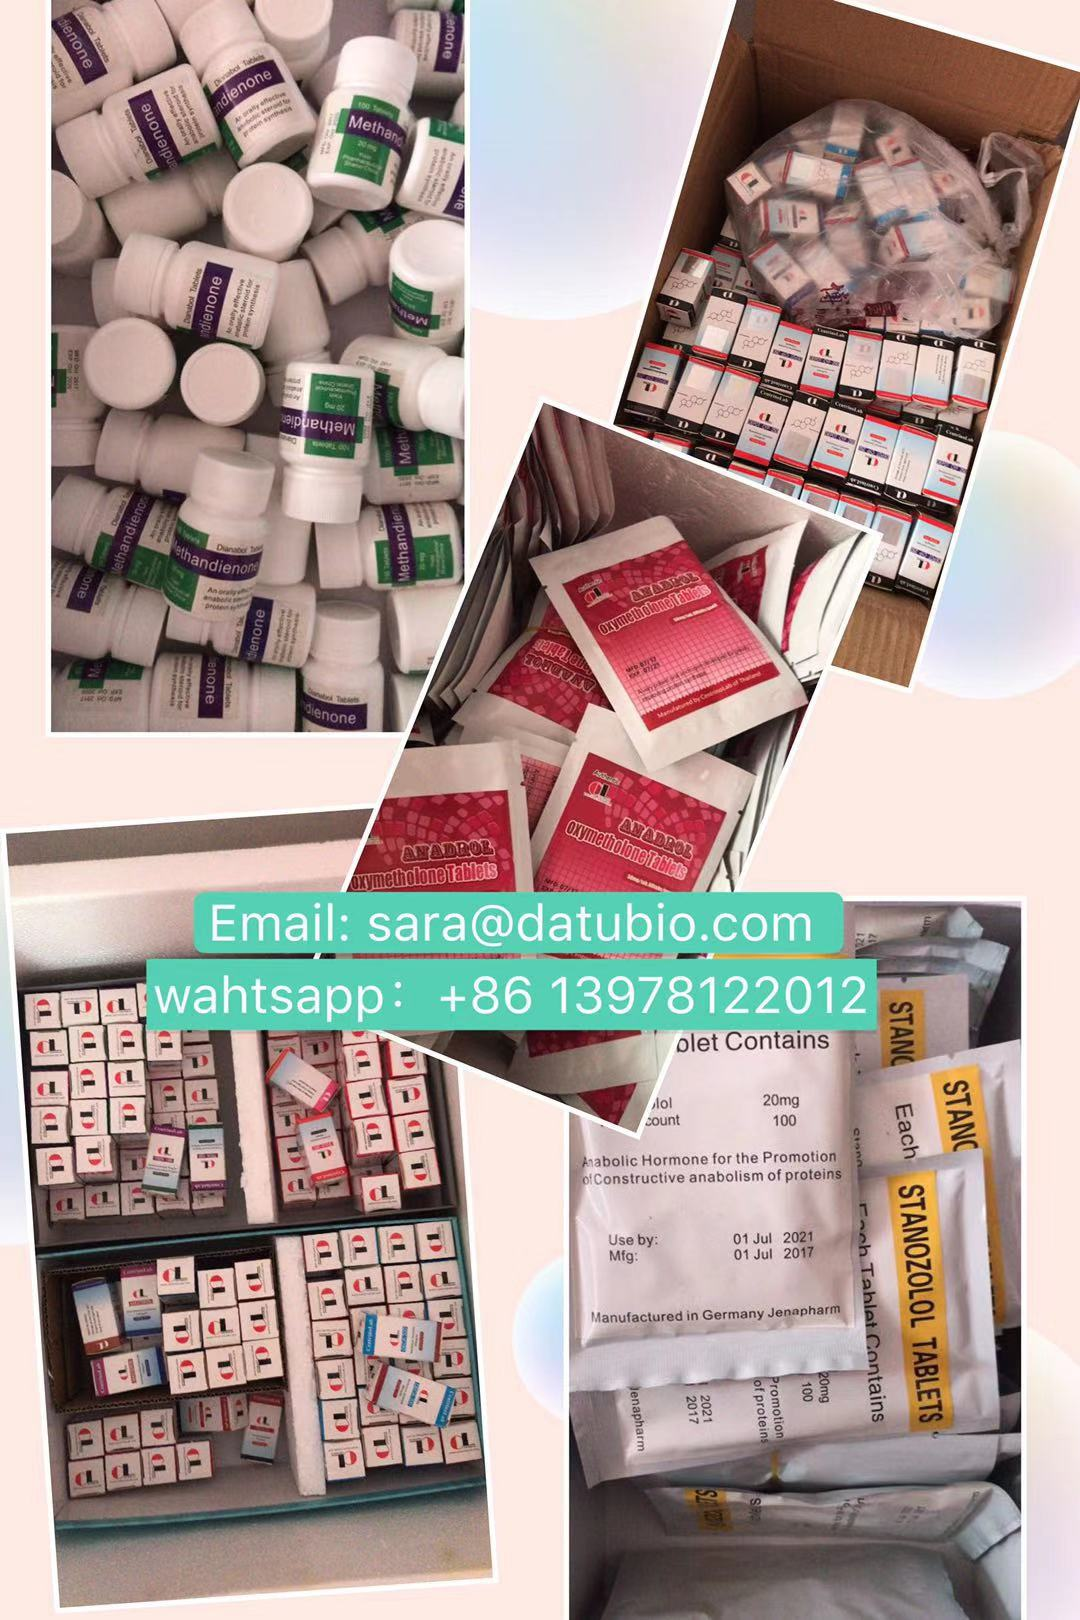 Anavar Tablets -1 bottle/10mg100pills-lwholesale price with high quality